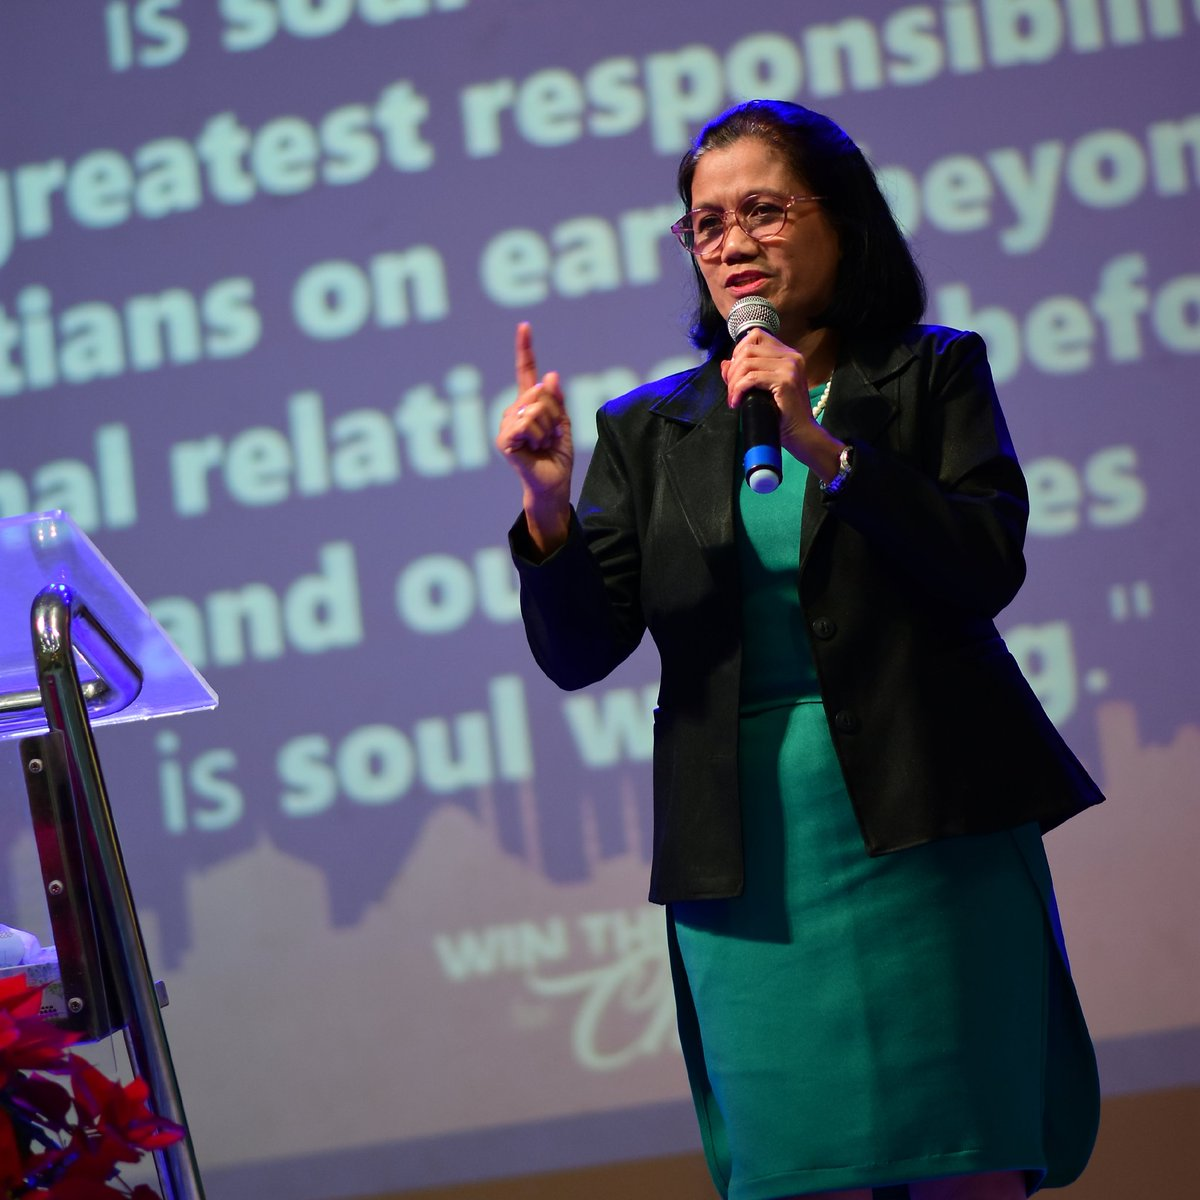 """Ptr. Jhe Buñug on Win The World for Christ: """"Maging priority natin ang soul winning dahil ito ang nagpapasaya sa puso ng Diyos. Let us not stop 'til the whole world knows that He is a great God."""" #SoulWinning #1stService<br>http://pic.twitter.com/bT0fmuzogY"""